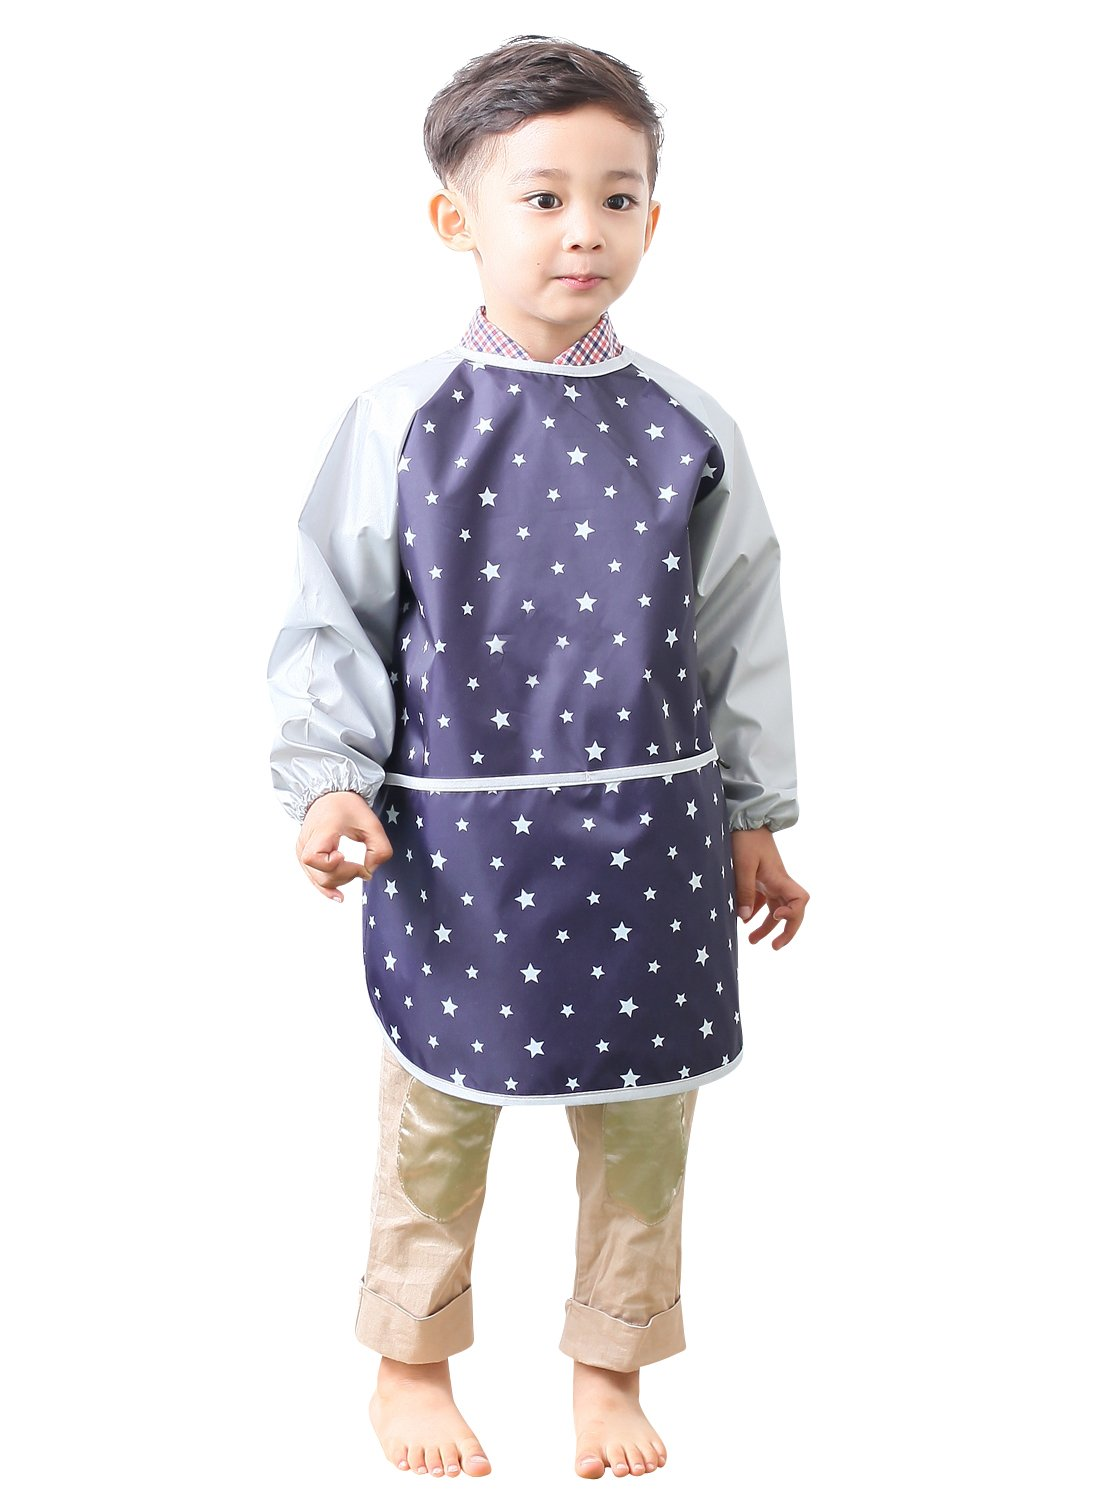 Plie Kids Art Smocks, Children Waterproof Artist Painting Aprons Long Sleeve with Pockets, Sliver Star (06-S)